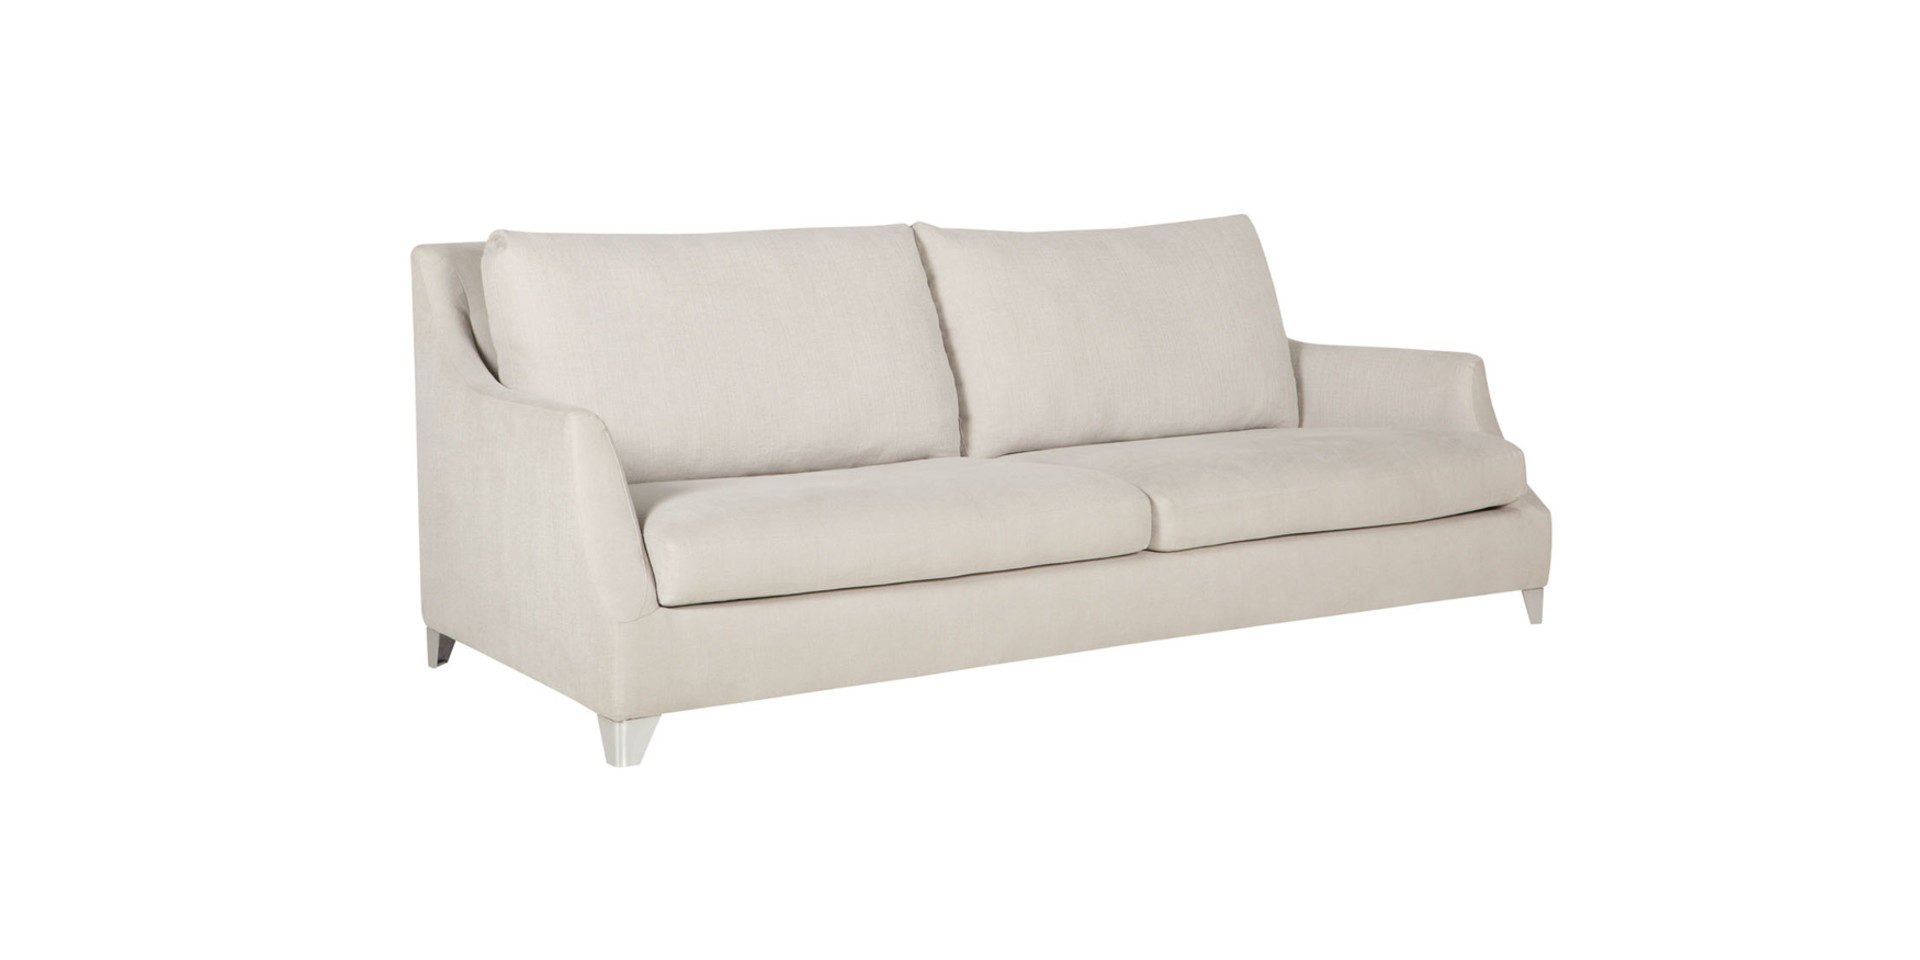 sits-rose-canape-3seater_caleido3790_light_beige_2